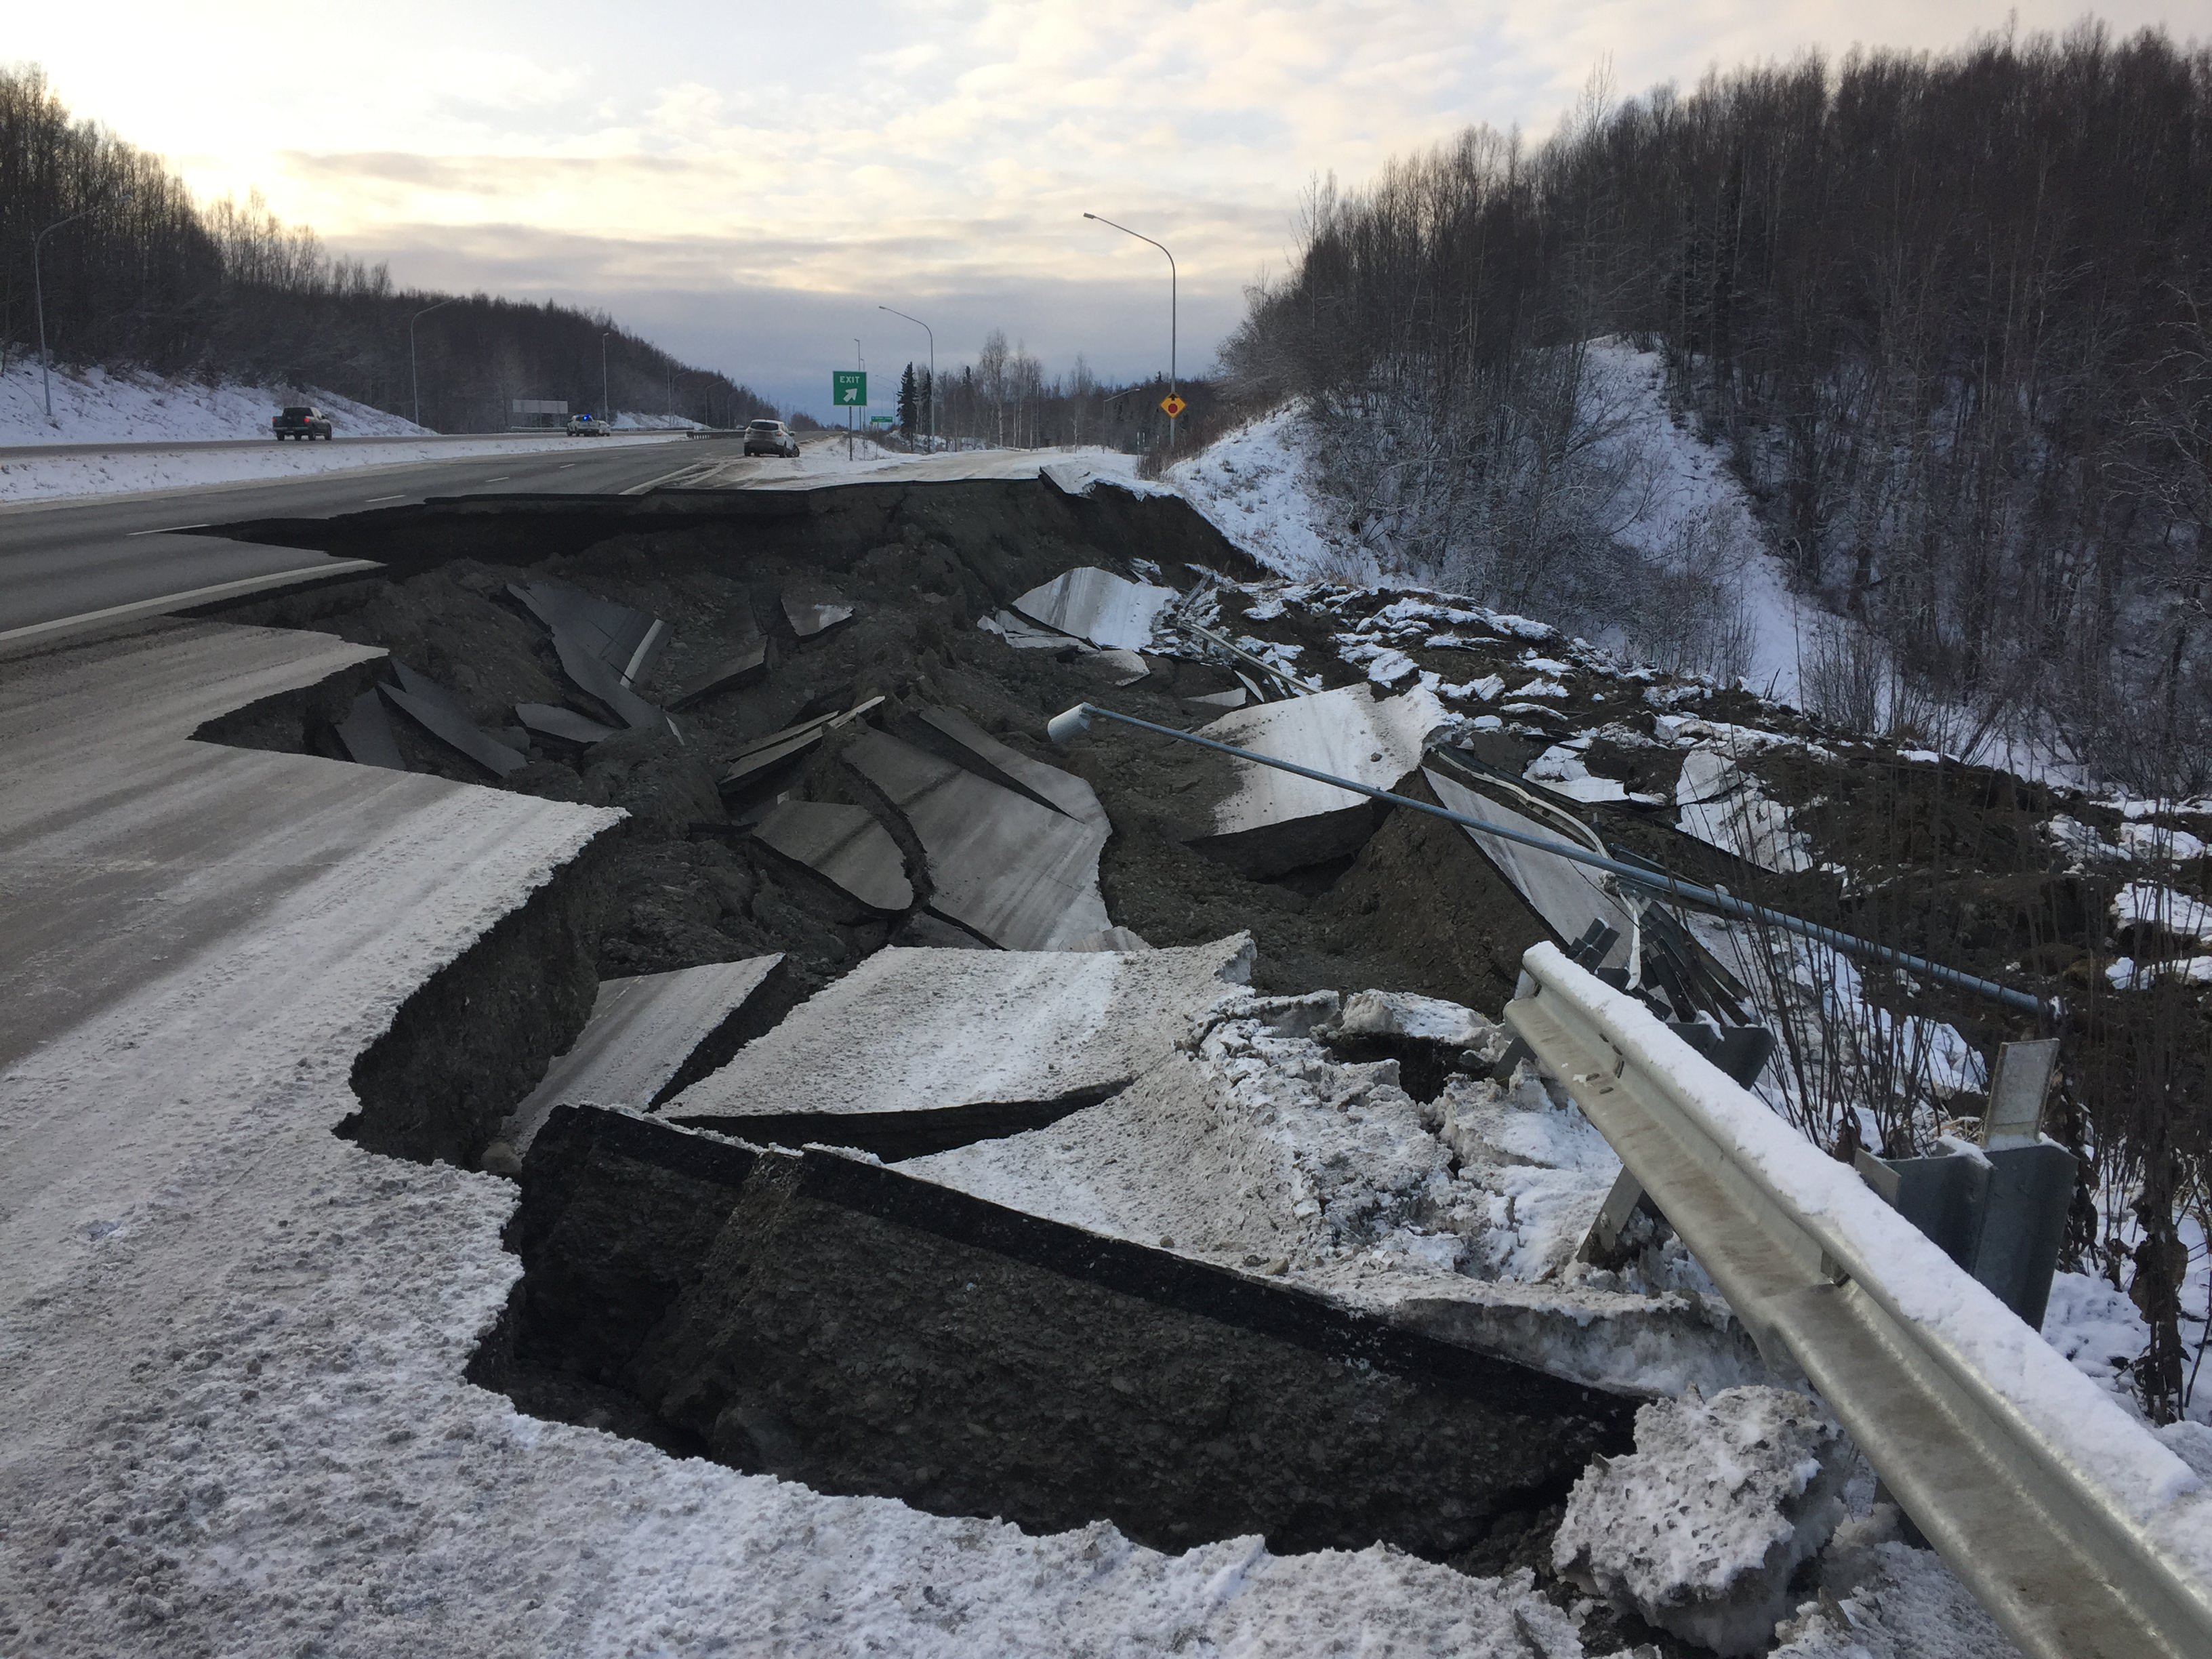 Highway damage in Alaska Earthquake by Alaska DOT&PF